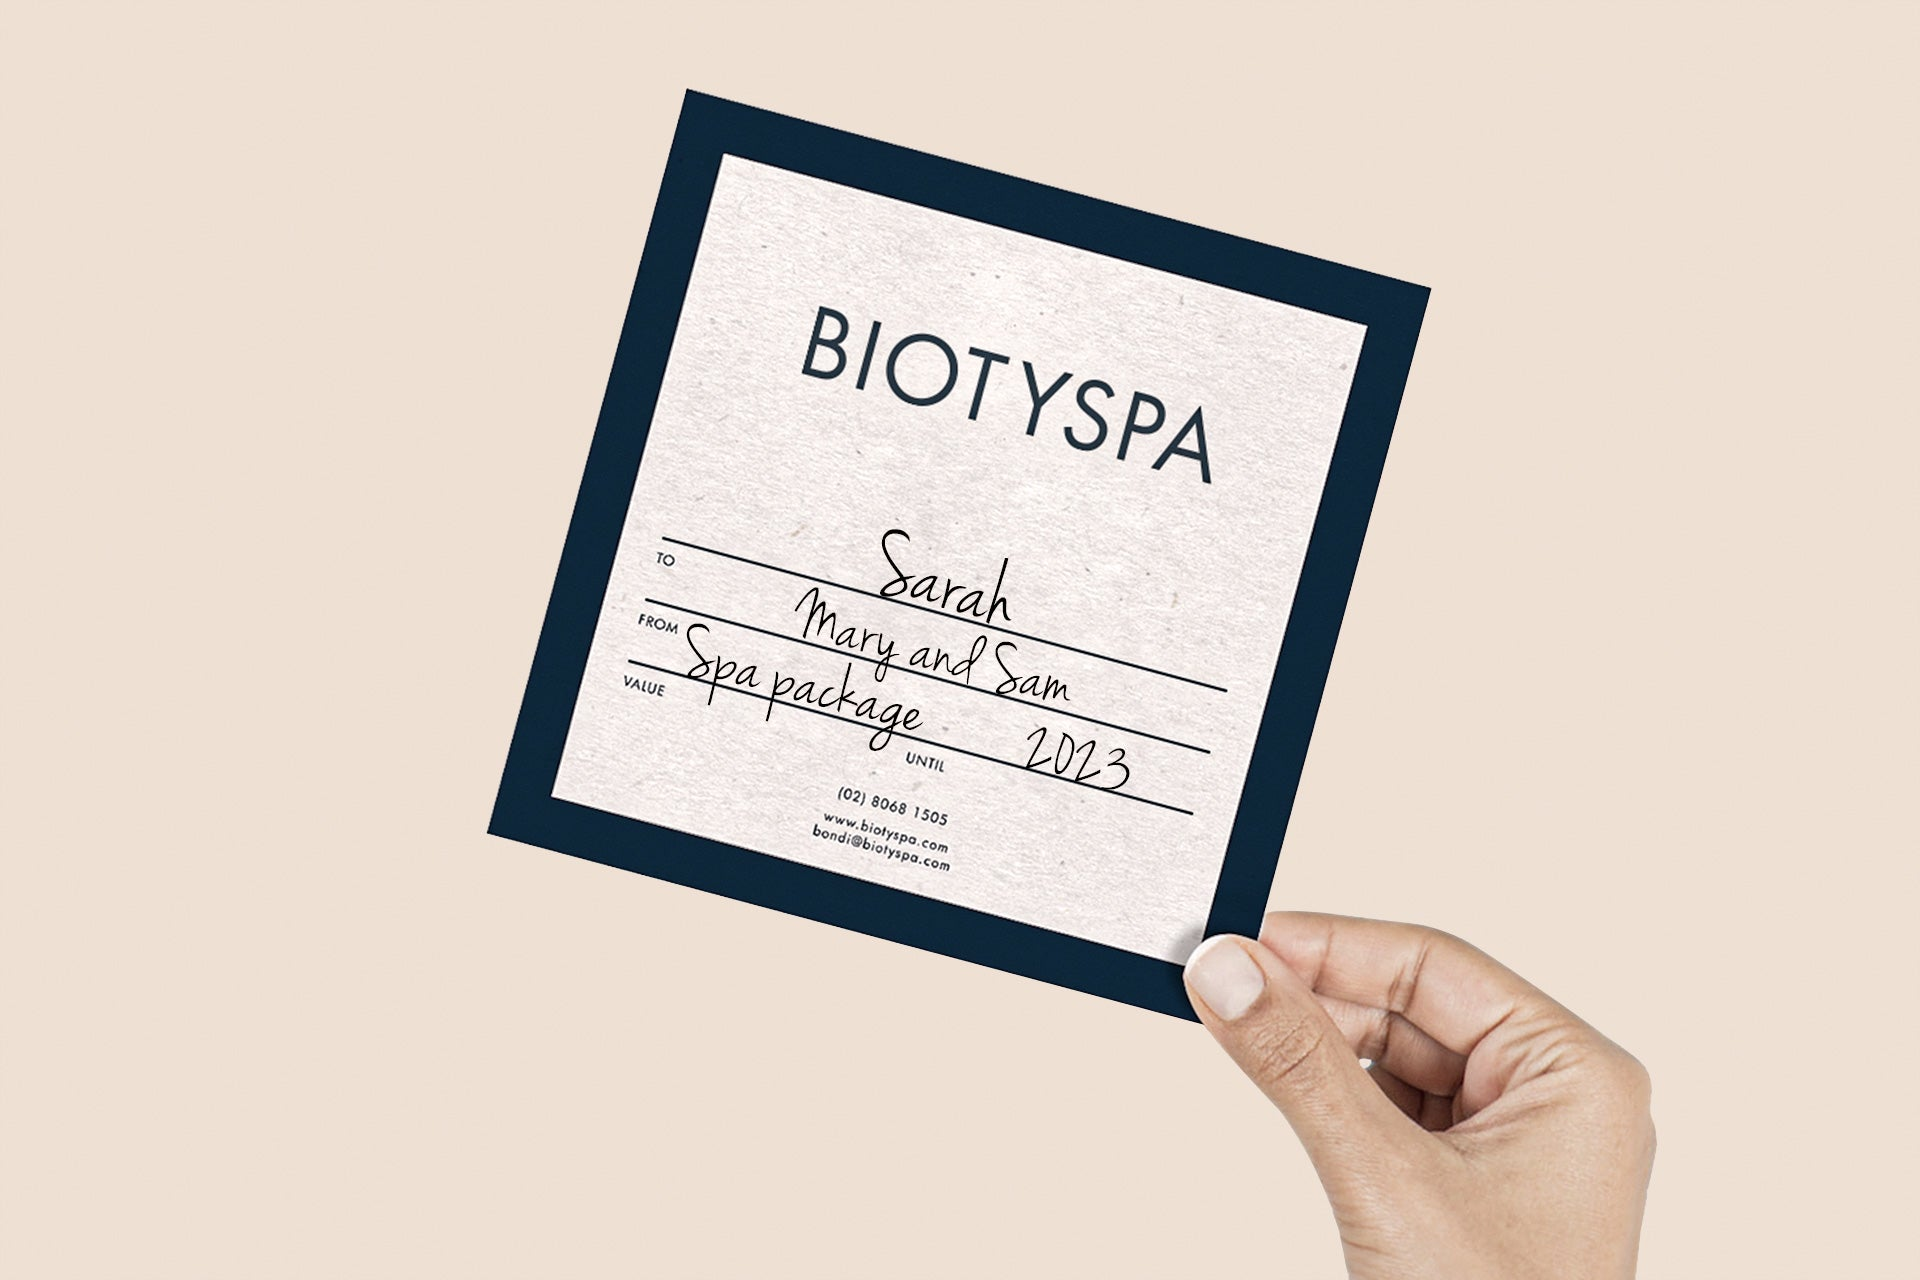 biotyspa spa gift card